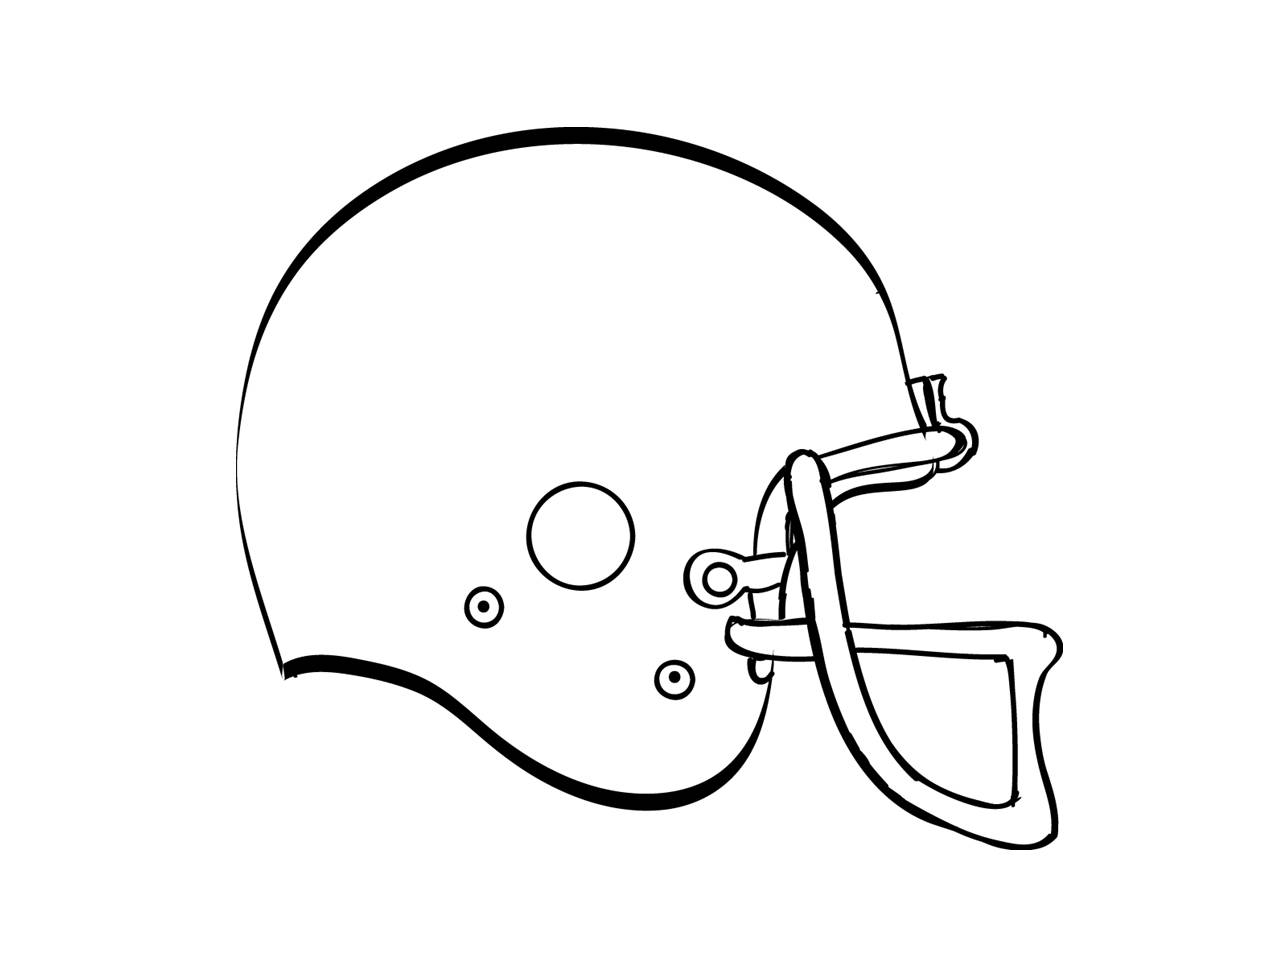 1278x959 Football Helmet Clip Art Free Clipart Images Image 2